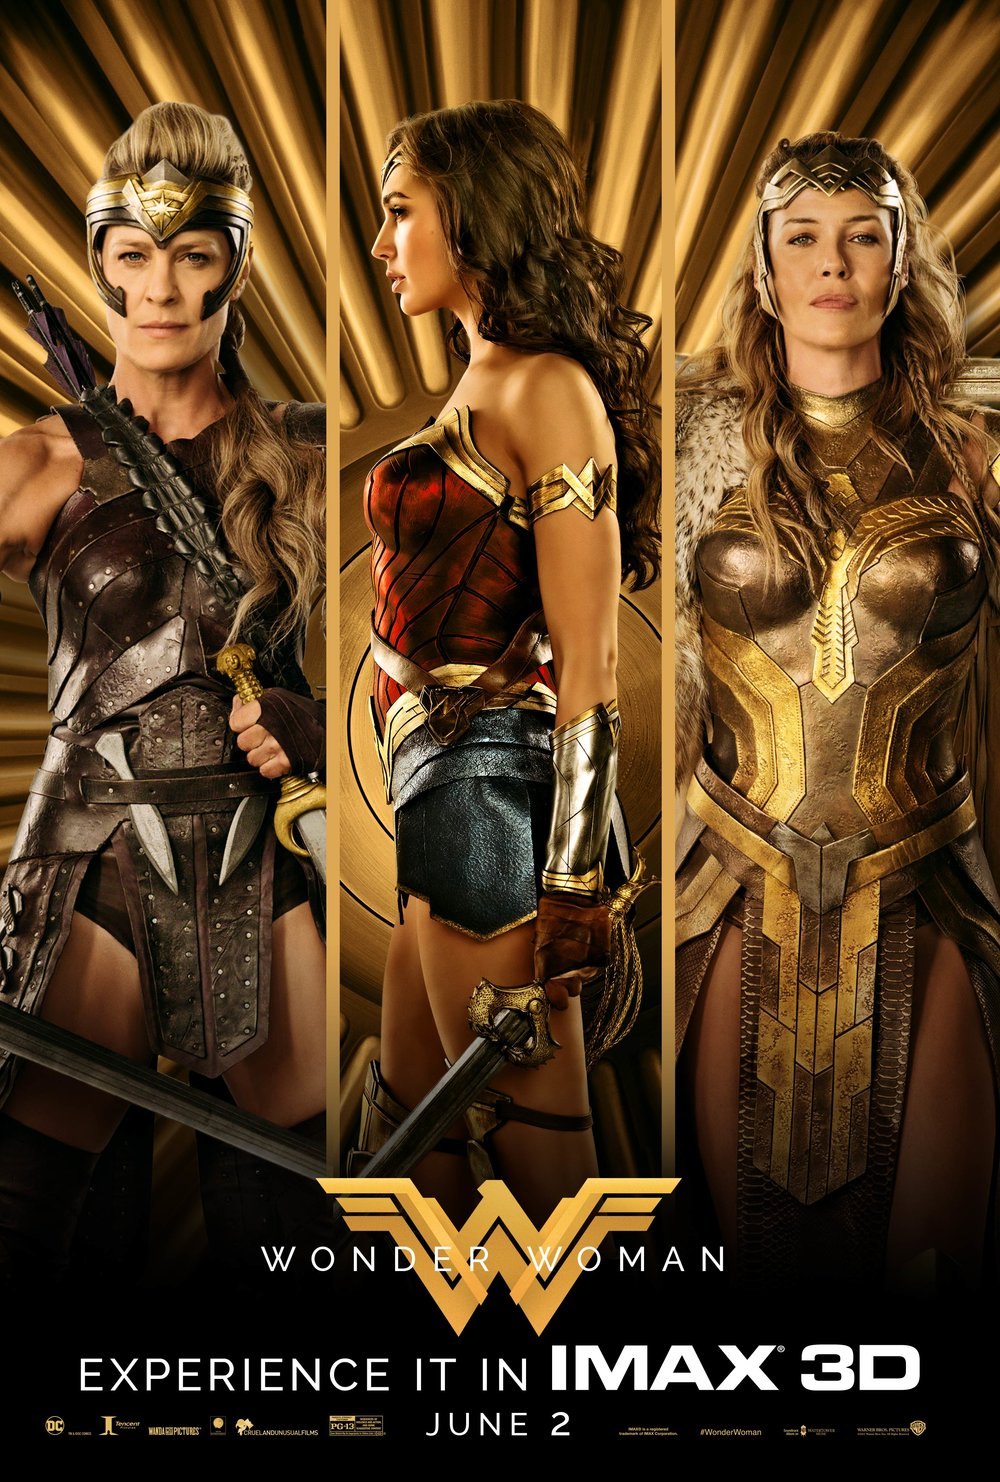 From https://www.comicbookmovie.com/wonder_woman/wonder-woman-queen-hippolyta-general-antiope-rise-together-as-one-on-a-gorgeous-new-imax-poster-a151351